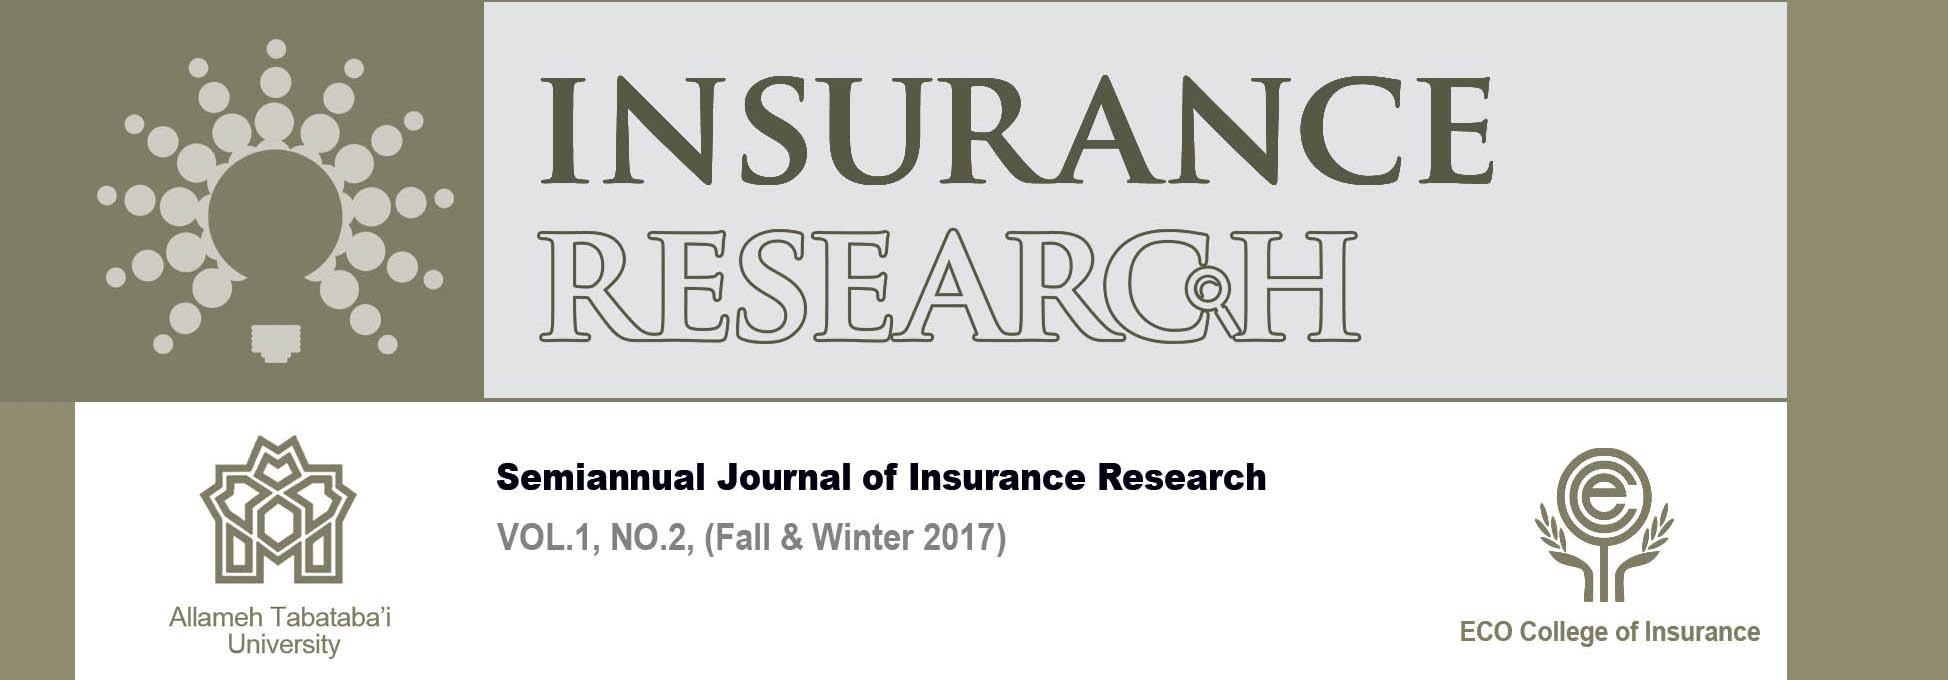 Journal of Insurance Research